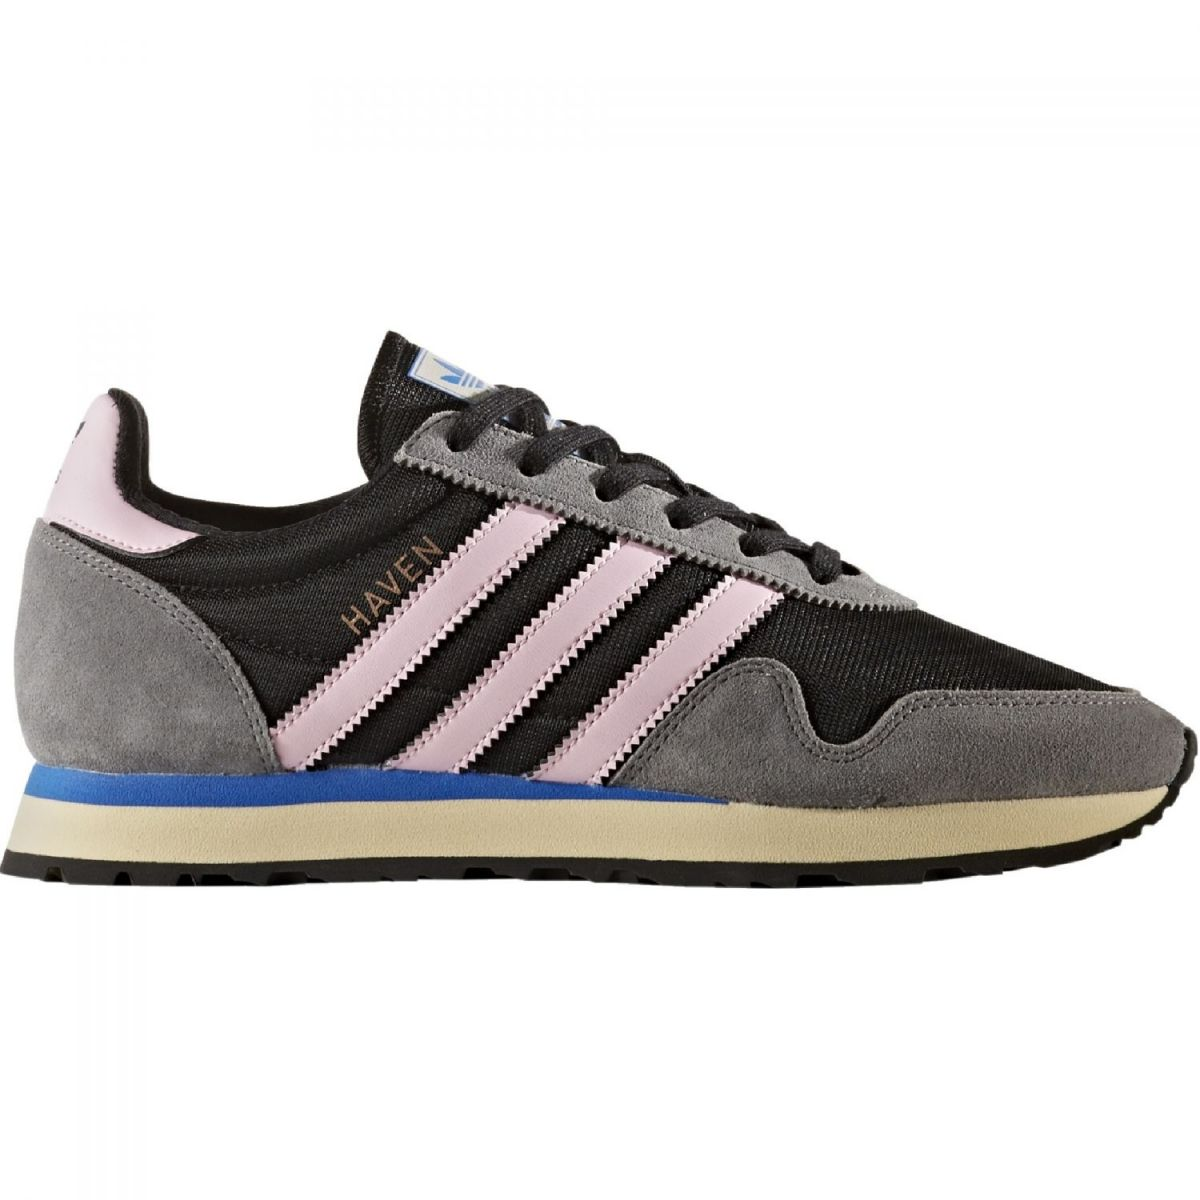 adidas originals haven sneaker damen schuhe schwarz pink. Black Bedroom Furniture Sets. Home Design Ideas